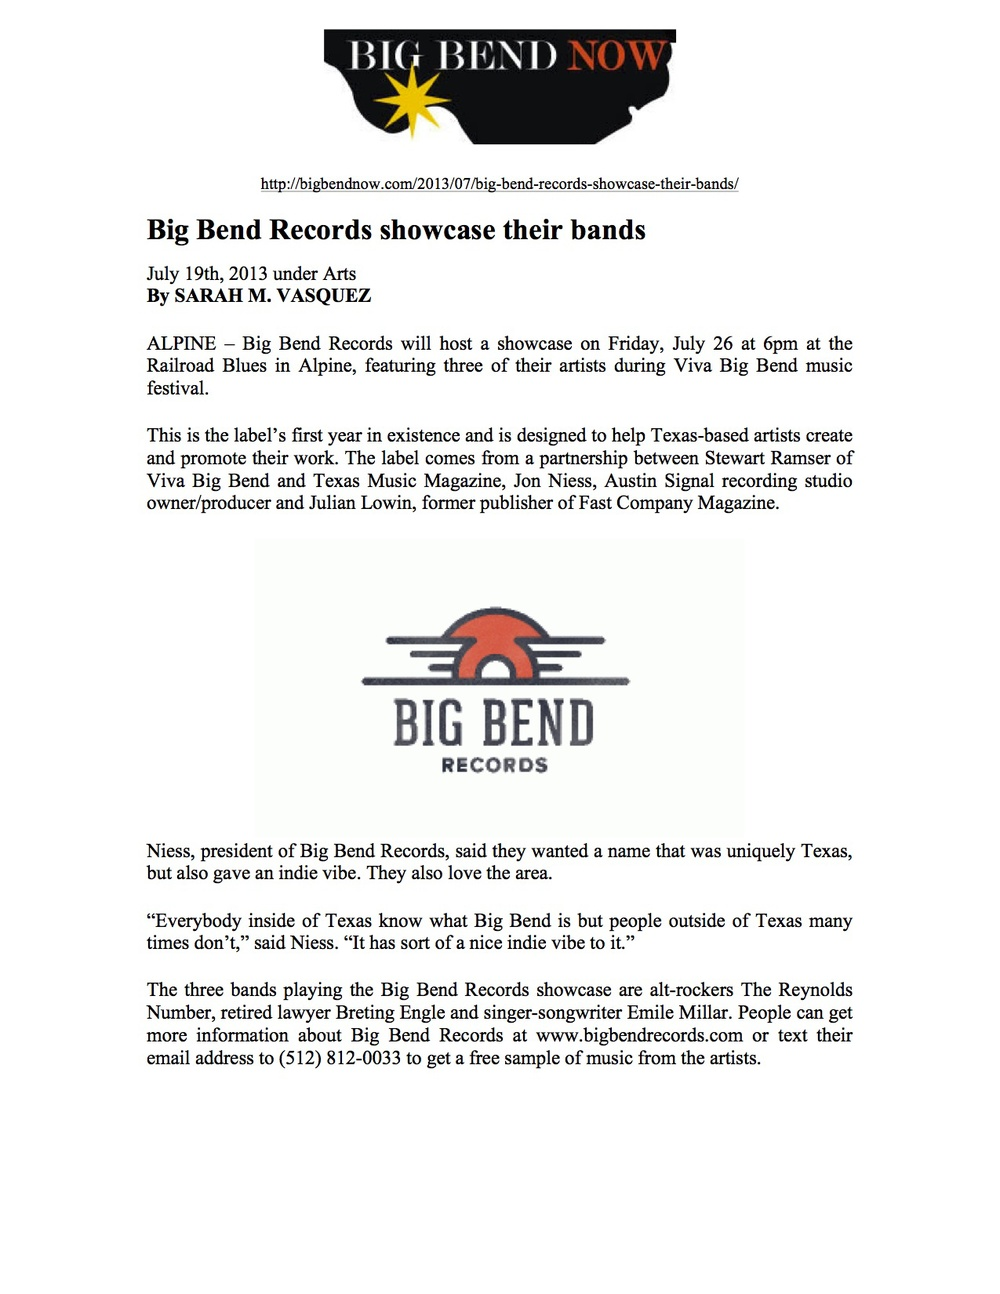 Big Bend Records_Big Bend Sentinel_July 19, 2013 jpeg.jpg